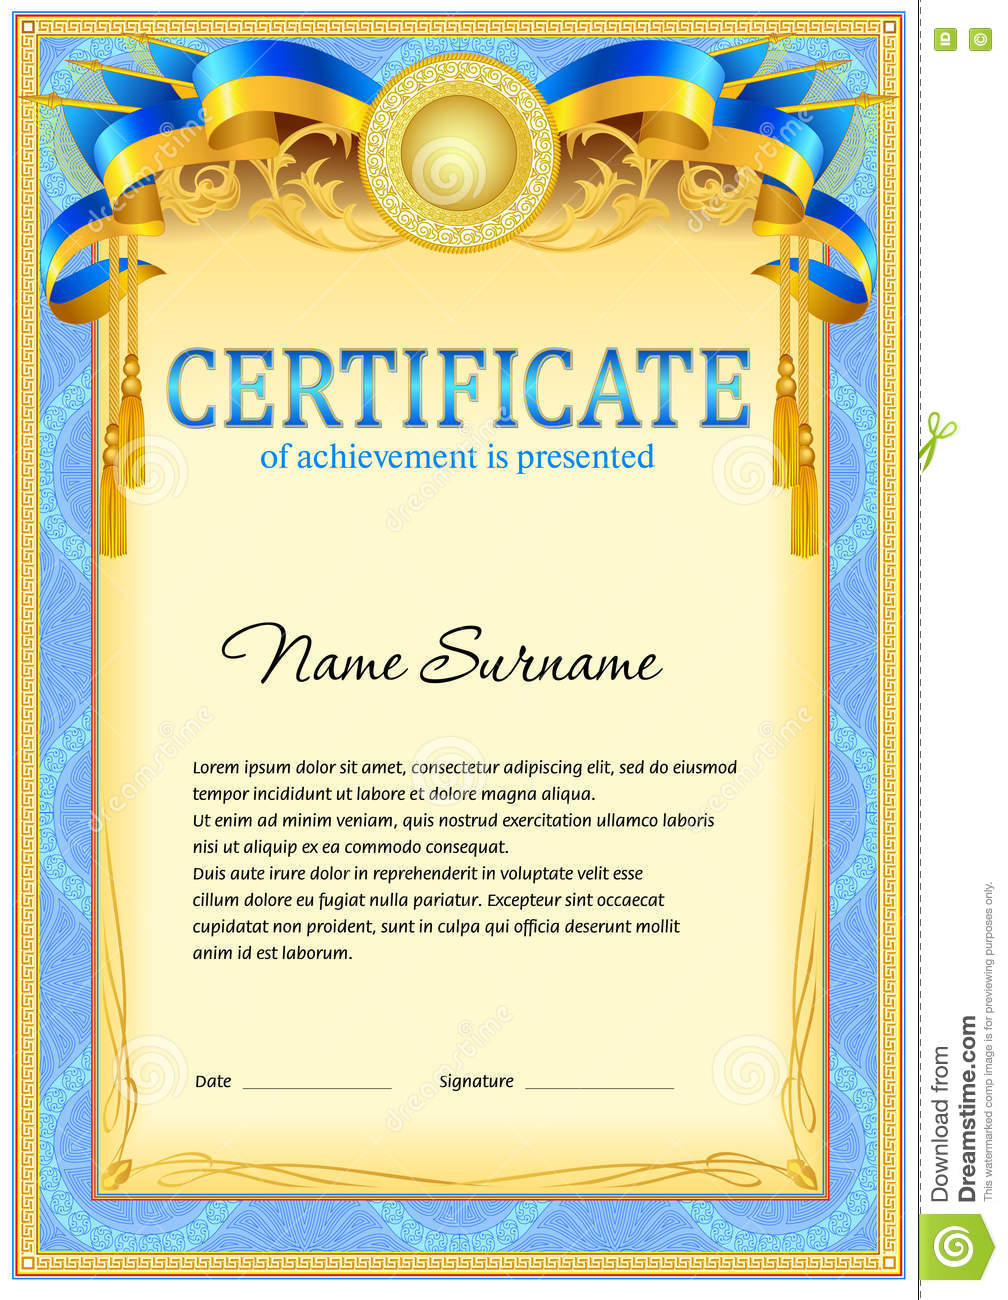 Certificate design template stock vector image 74656669 for High school diploma certificate fancy design templates